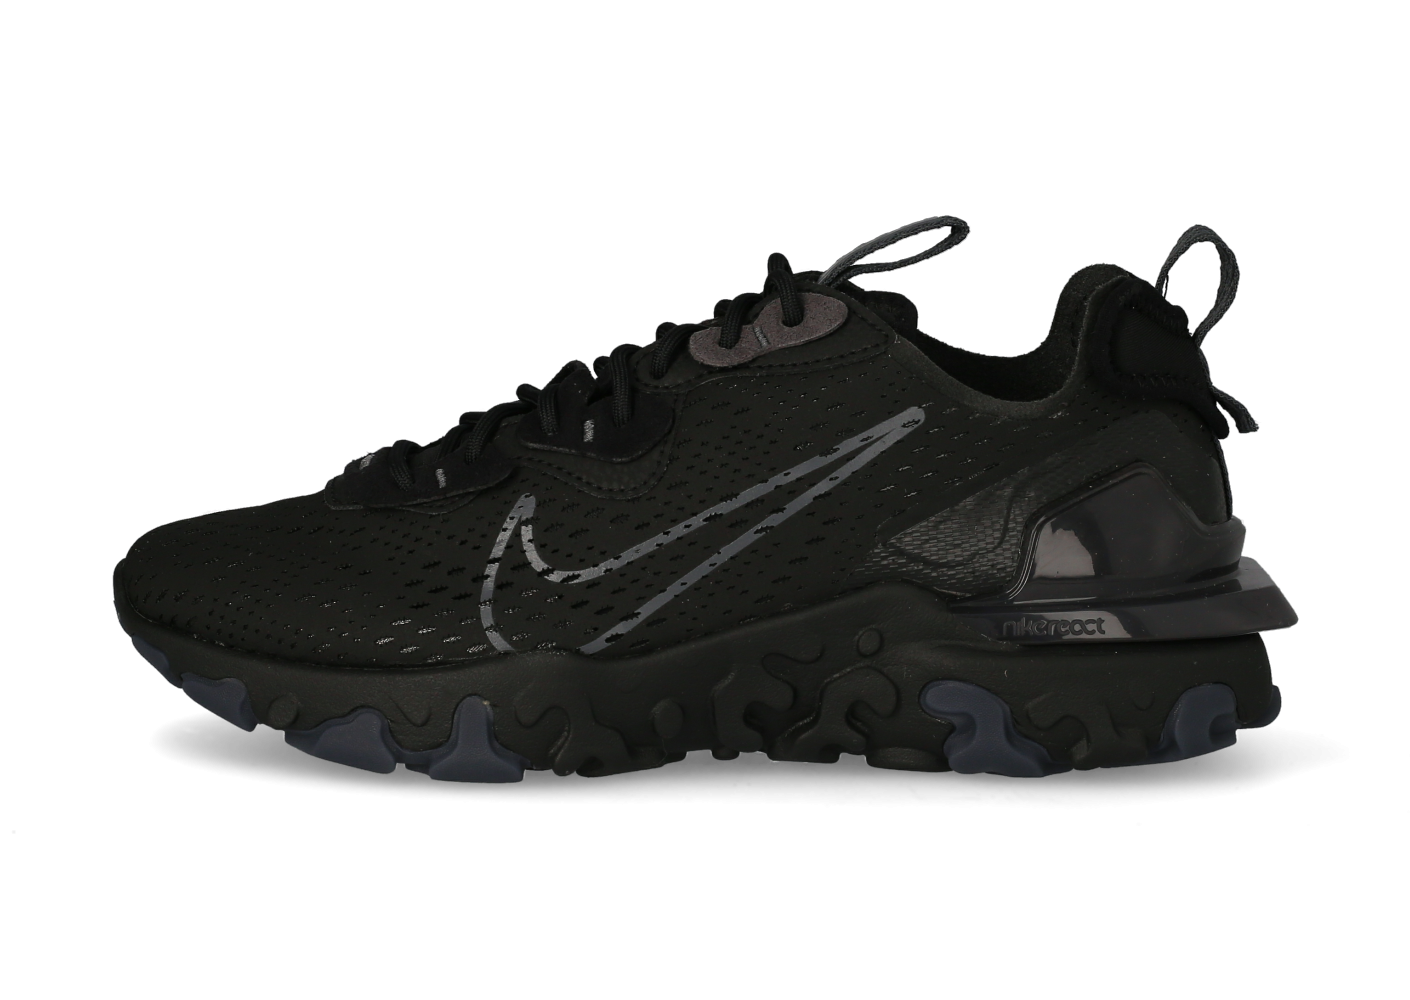 Nike React Vision noir - Chaussures Baskets homme - Chausport